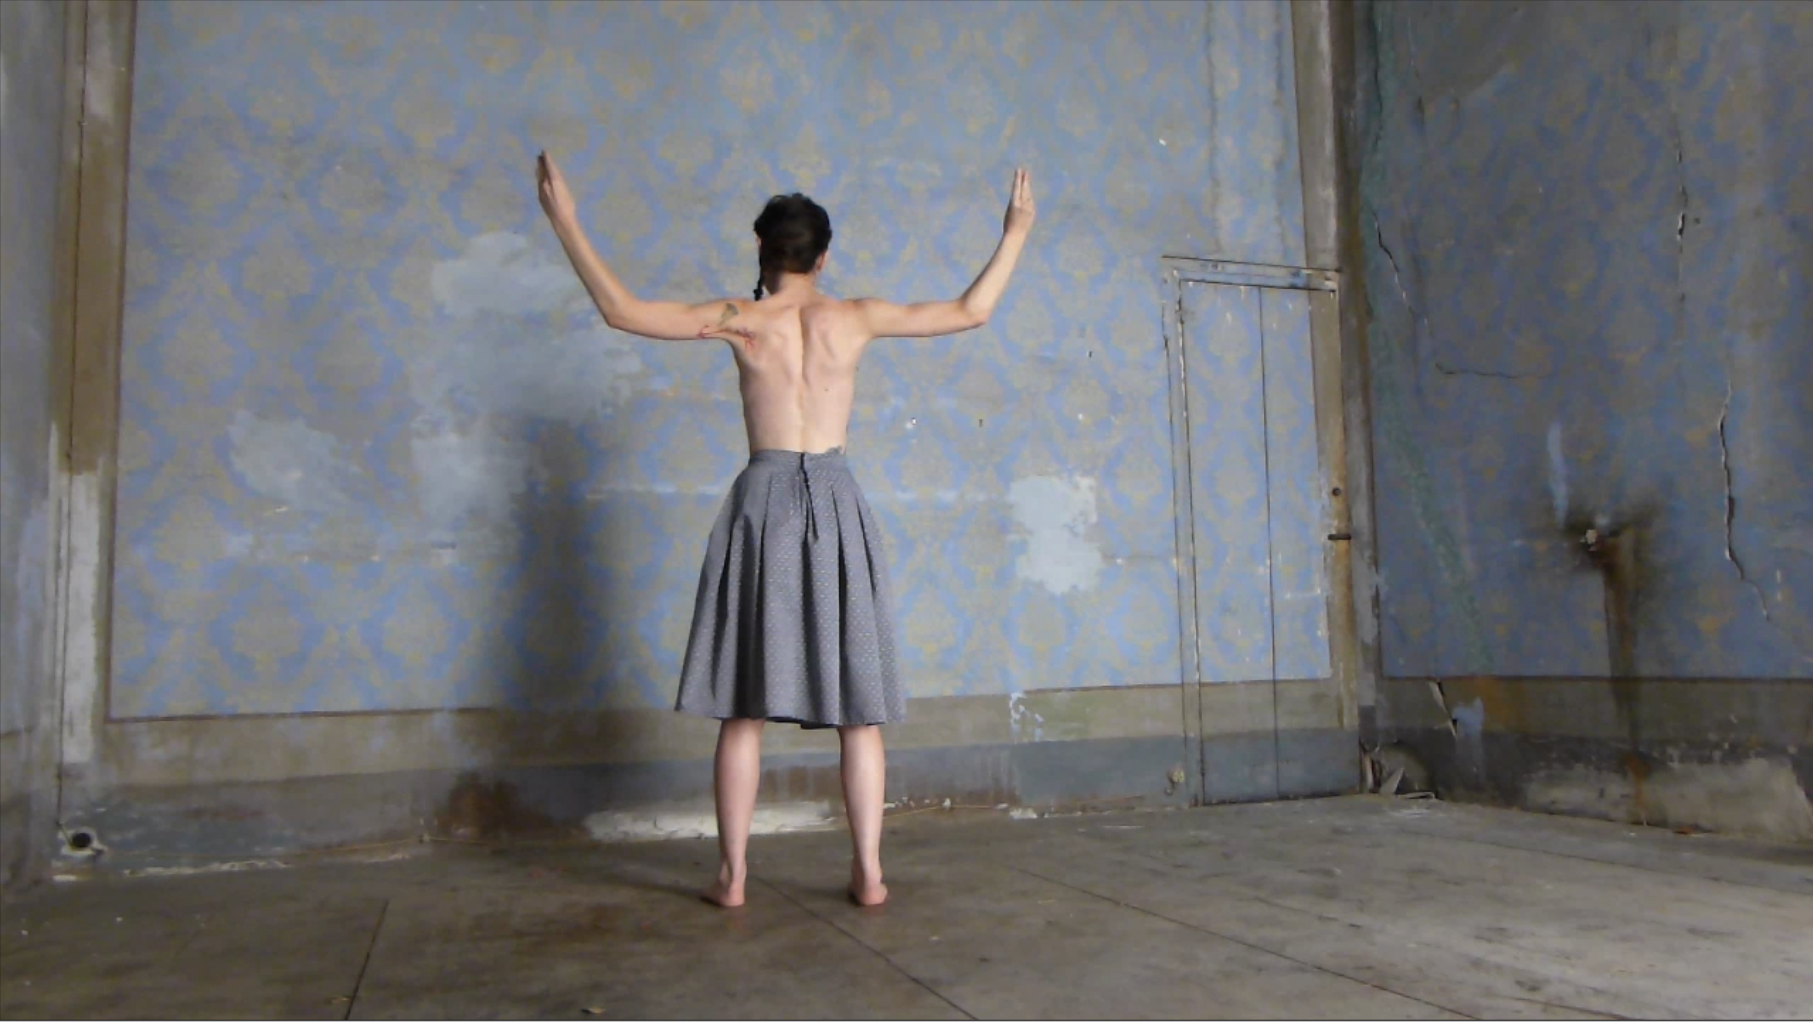 Performance Sweet Home di Ilaria Dalle Donne (2018)